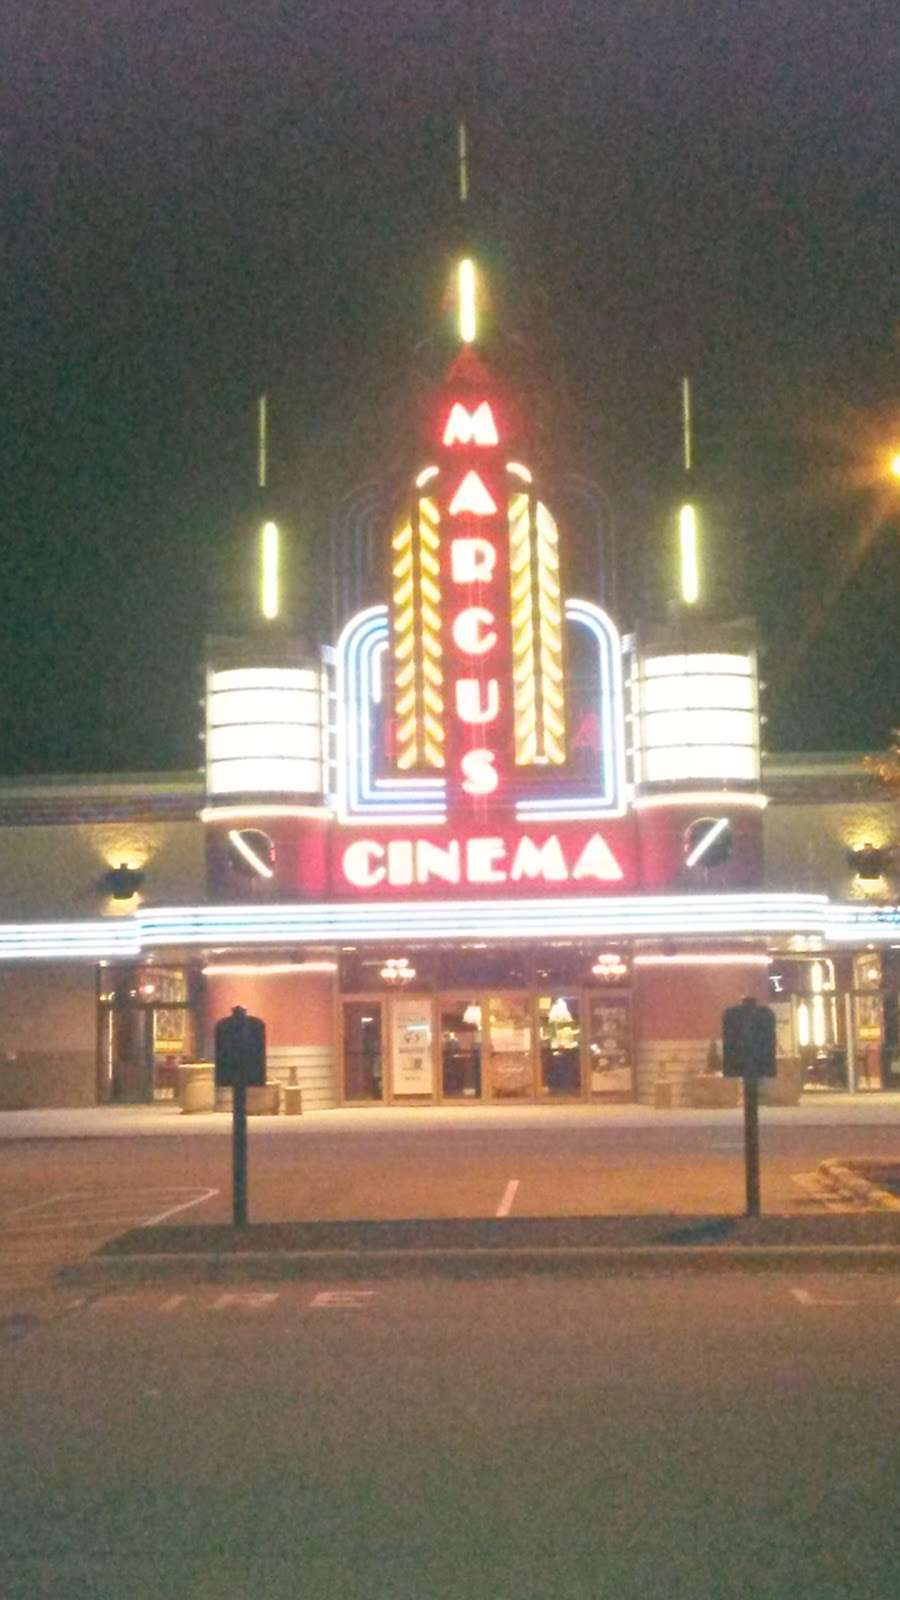 Marcus Ridge Cinema - movie theater  | Photo 5 of 10 | Address: 5200 S Moorland Rd, New Berlin, WI 53151, USA | Phone: (262) 797-0889